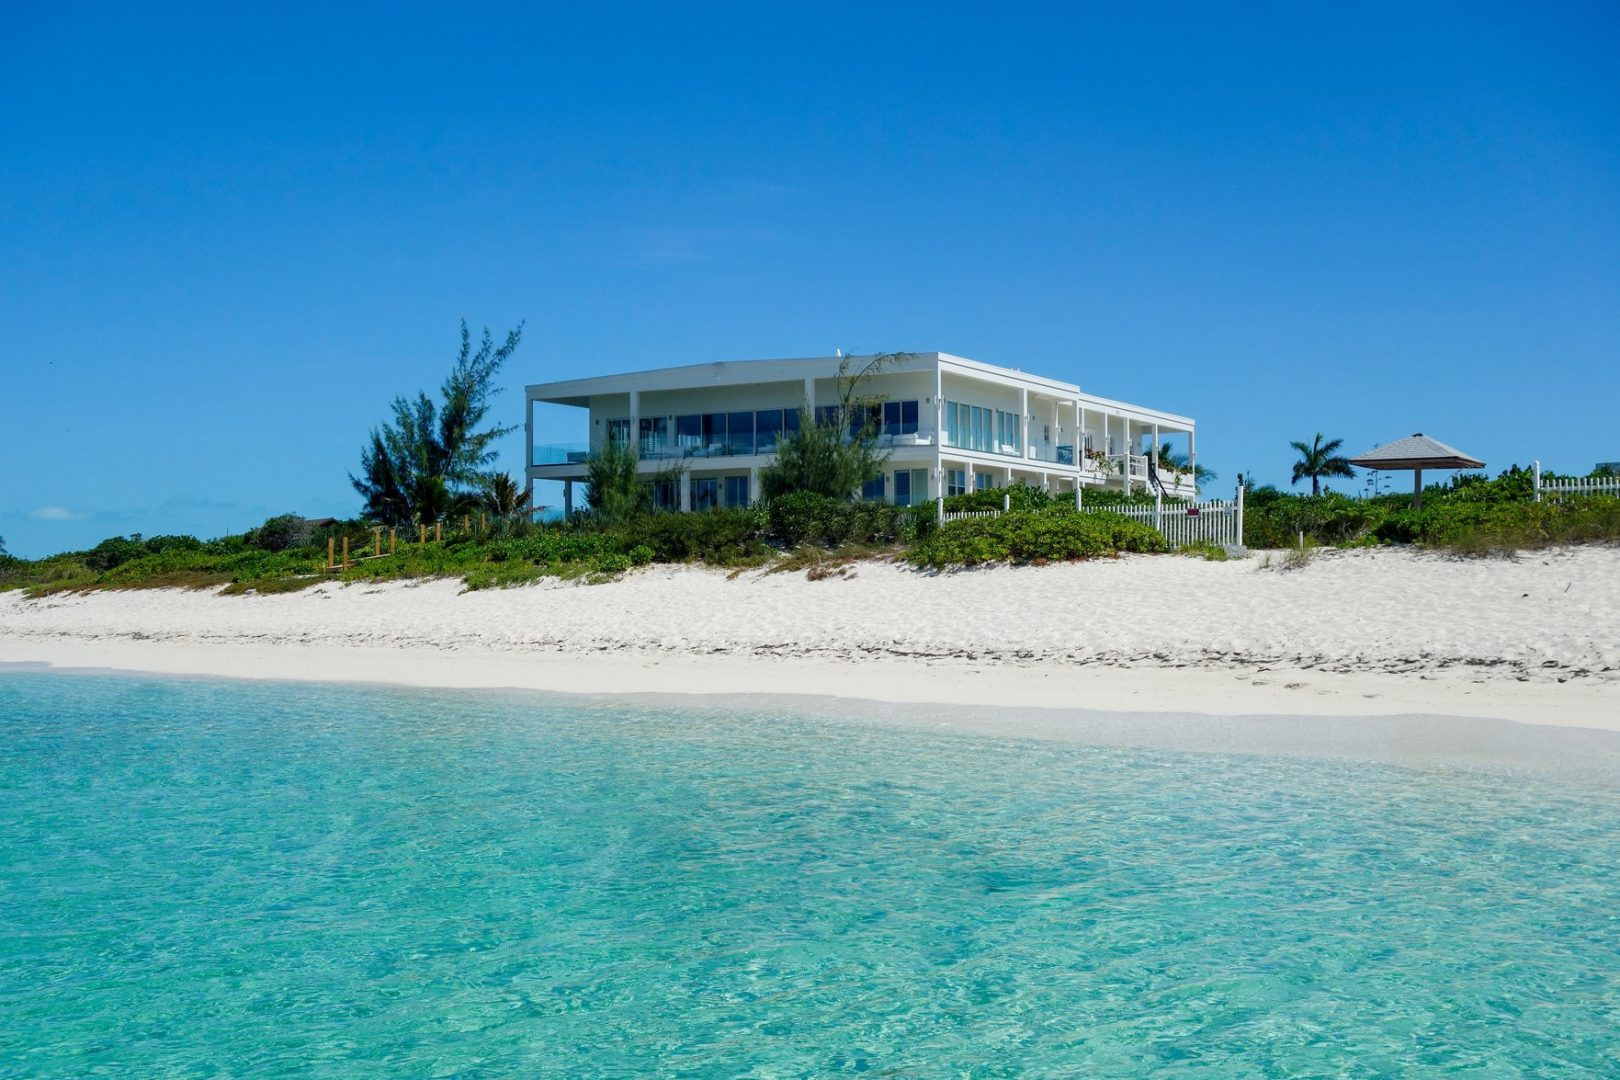 Villa Impulse on Providenciales Turks and Caicos